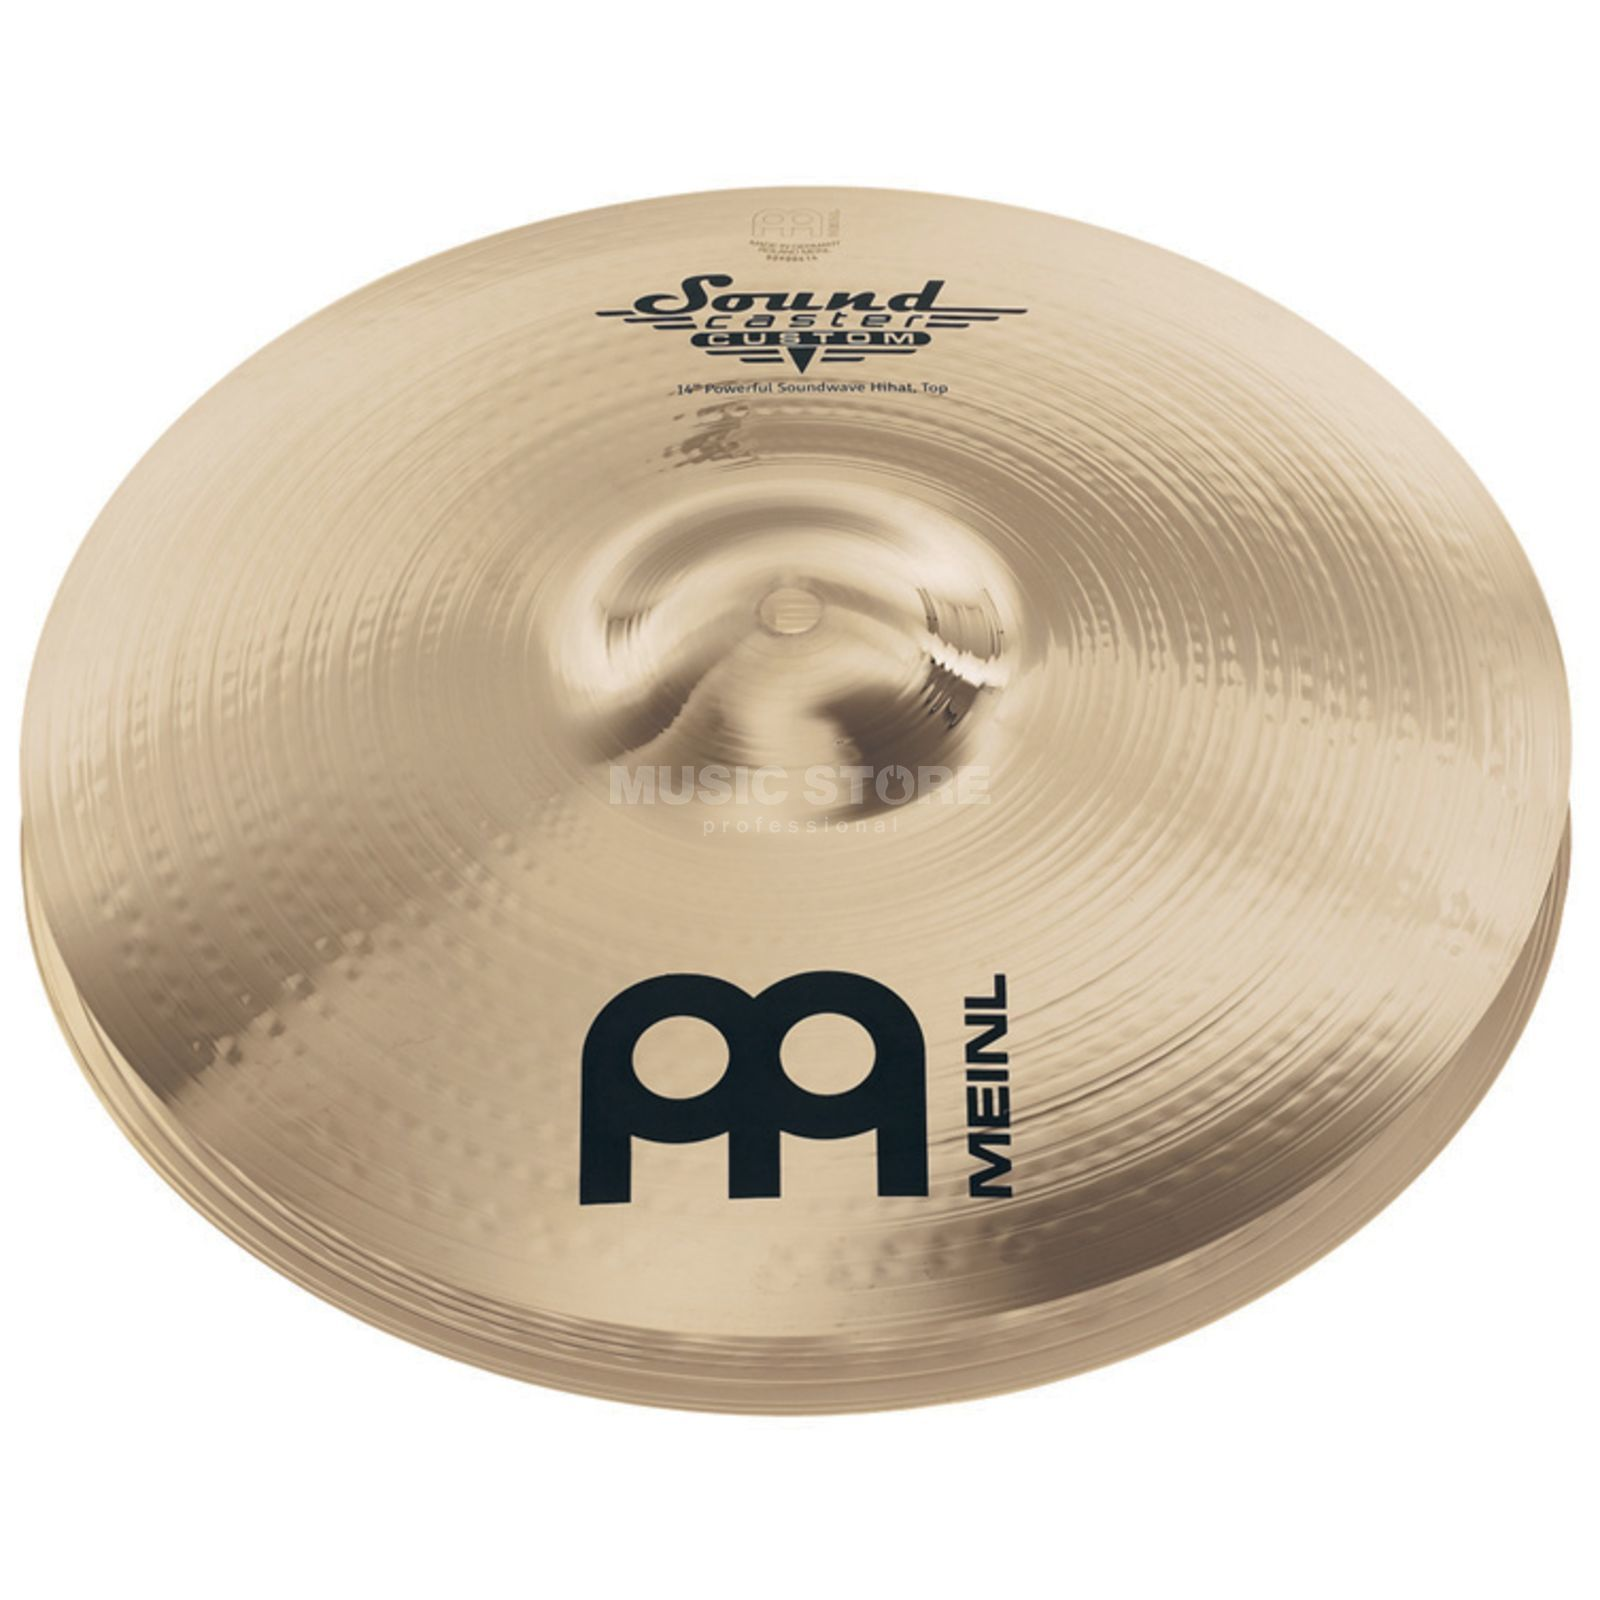 "Meinl SoundCaster Custom HiHat 14"" SC14PSW-B, Powerful, Soundwave Product Image"